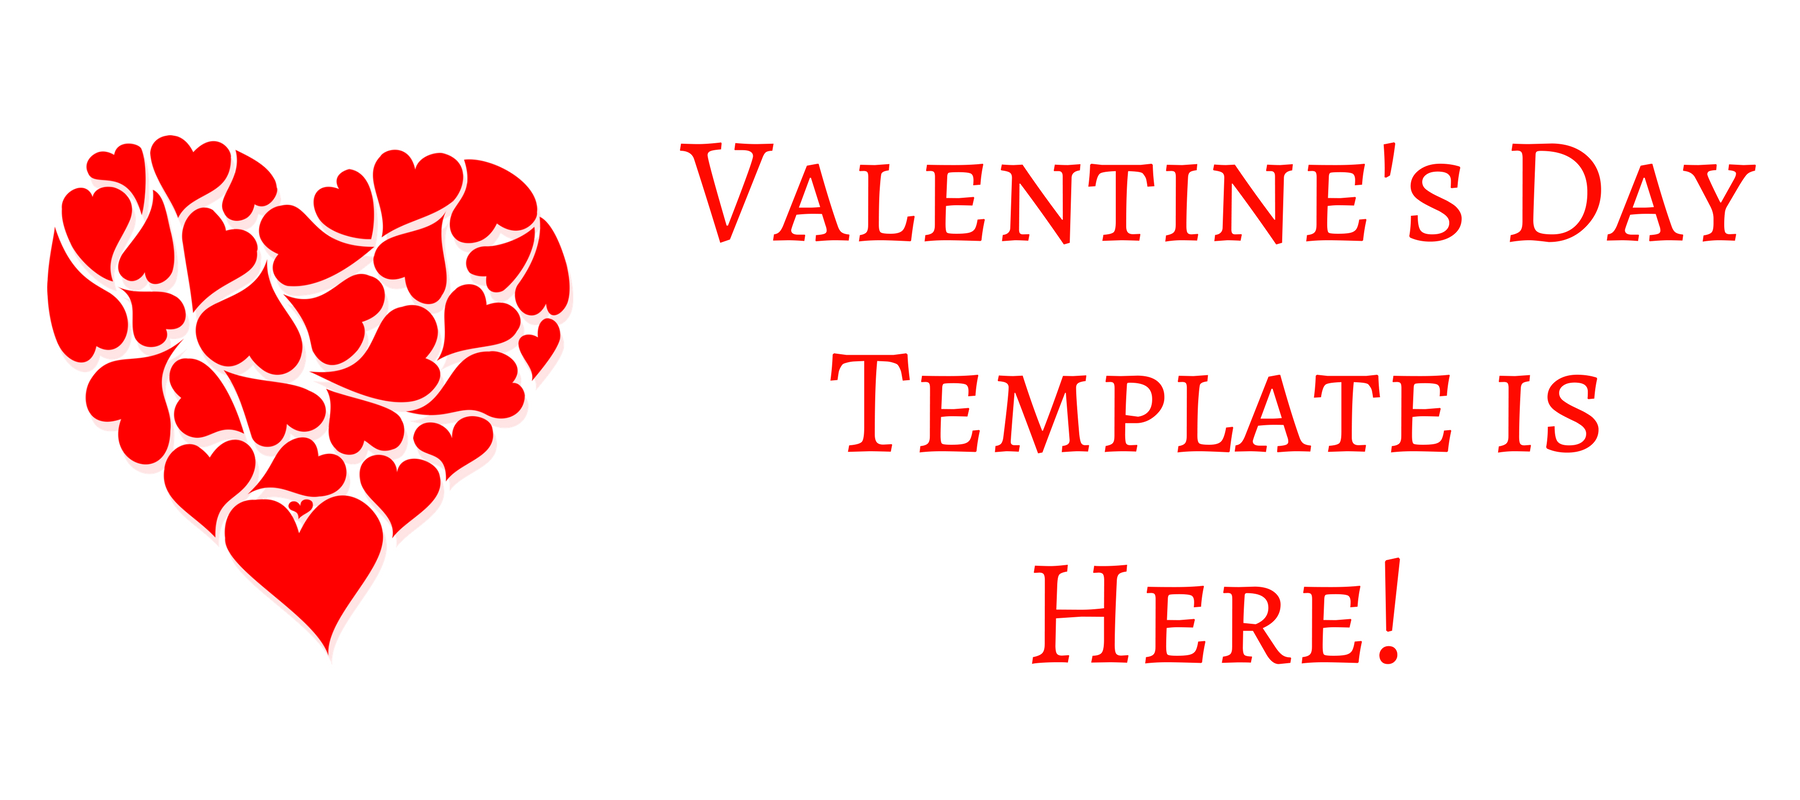 Valentine's Day Template